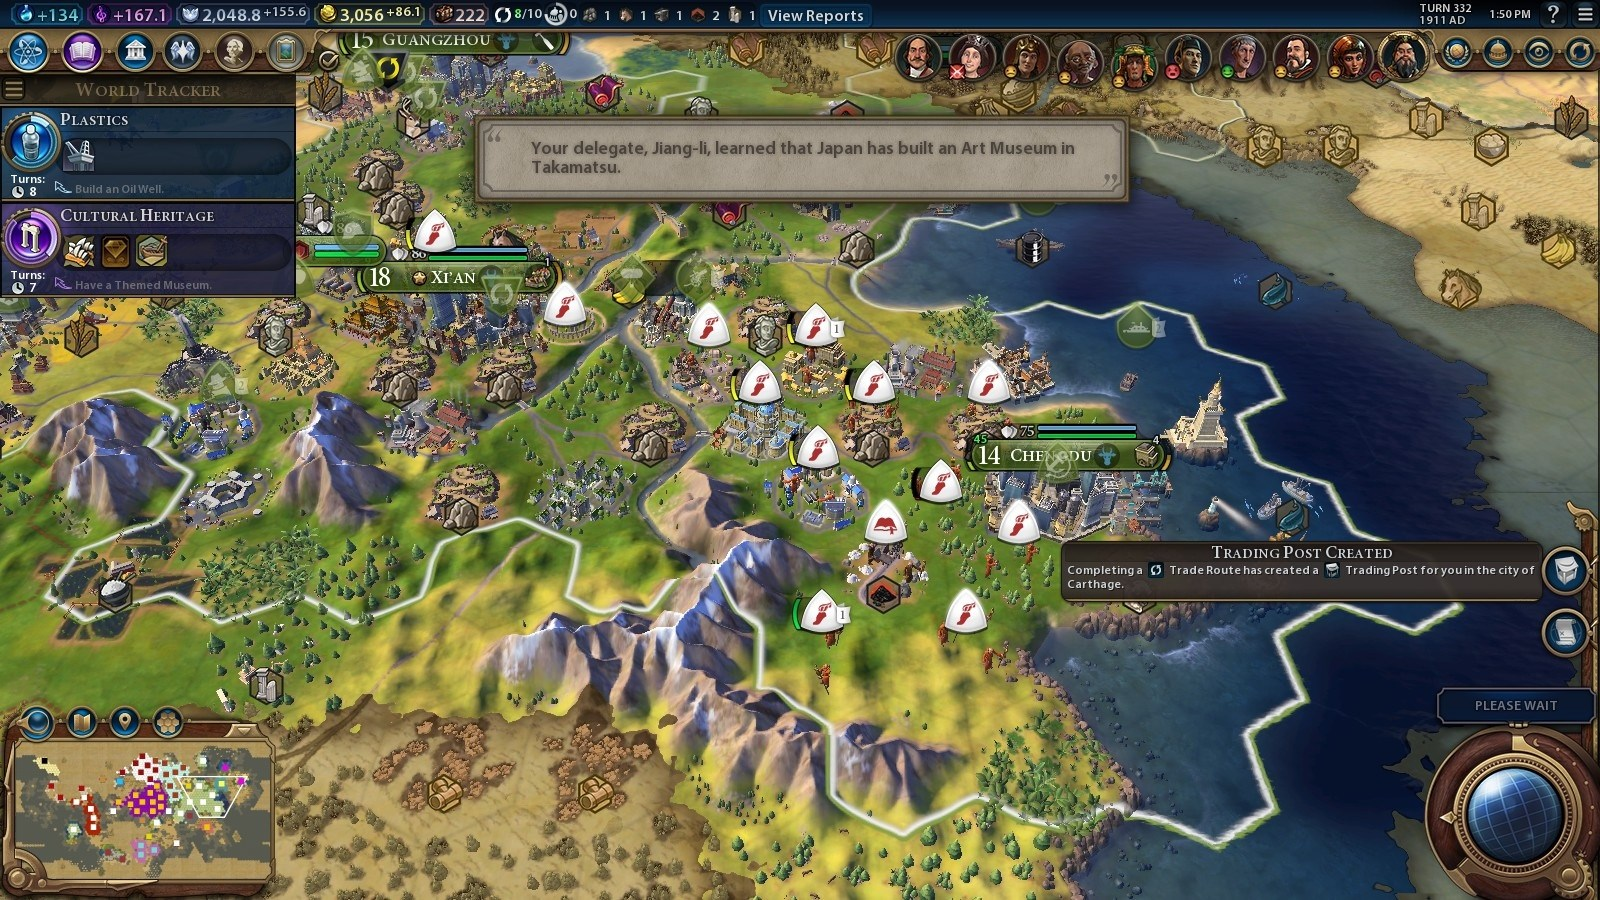 What are the main changes in Civ 6 compared to Civ 5? - Quora